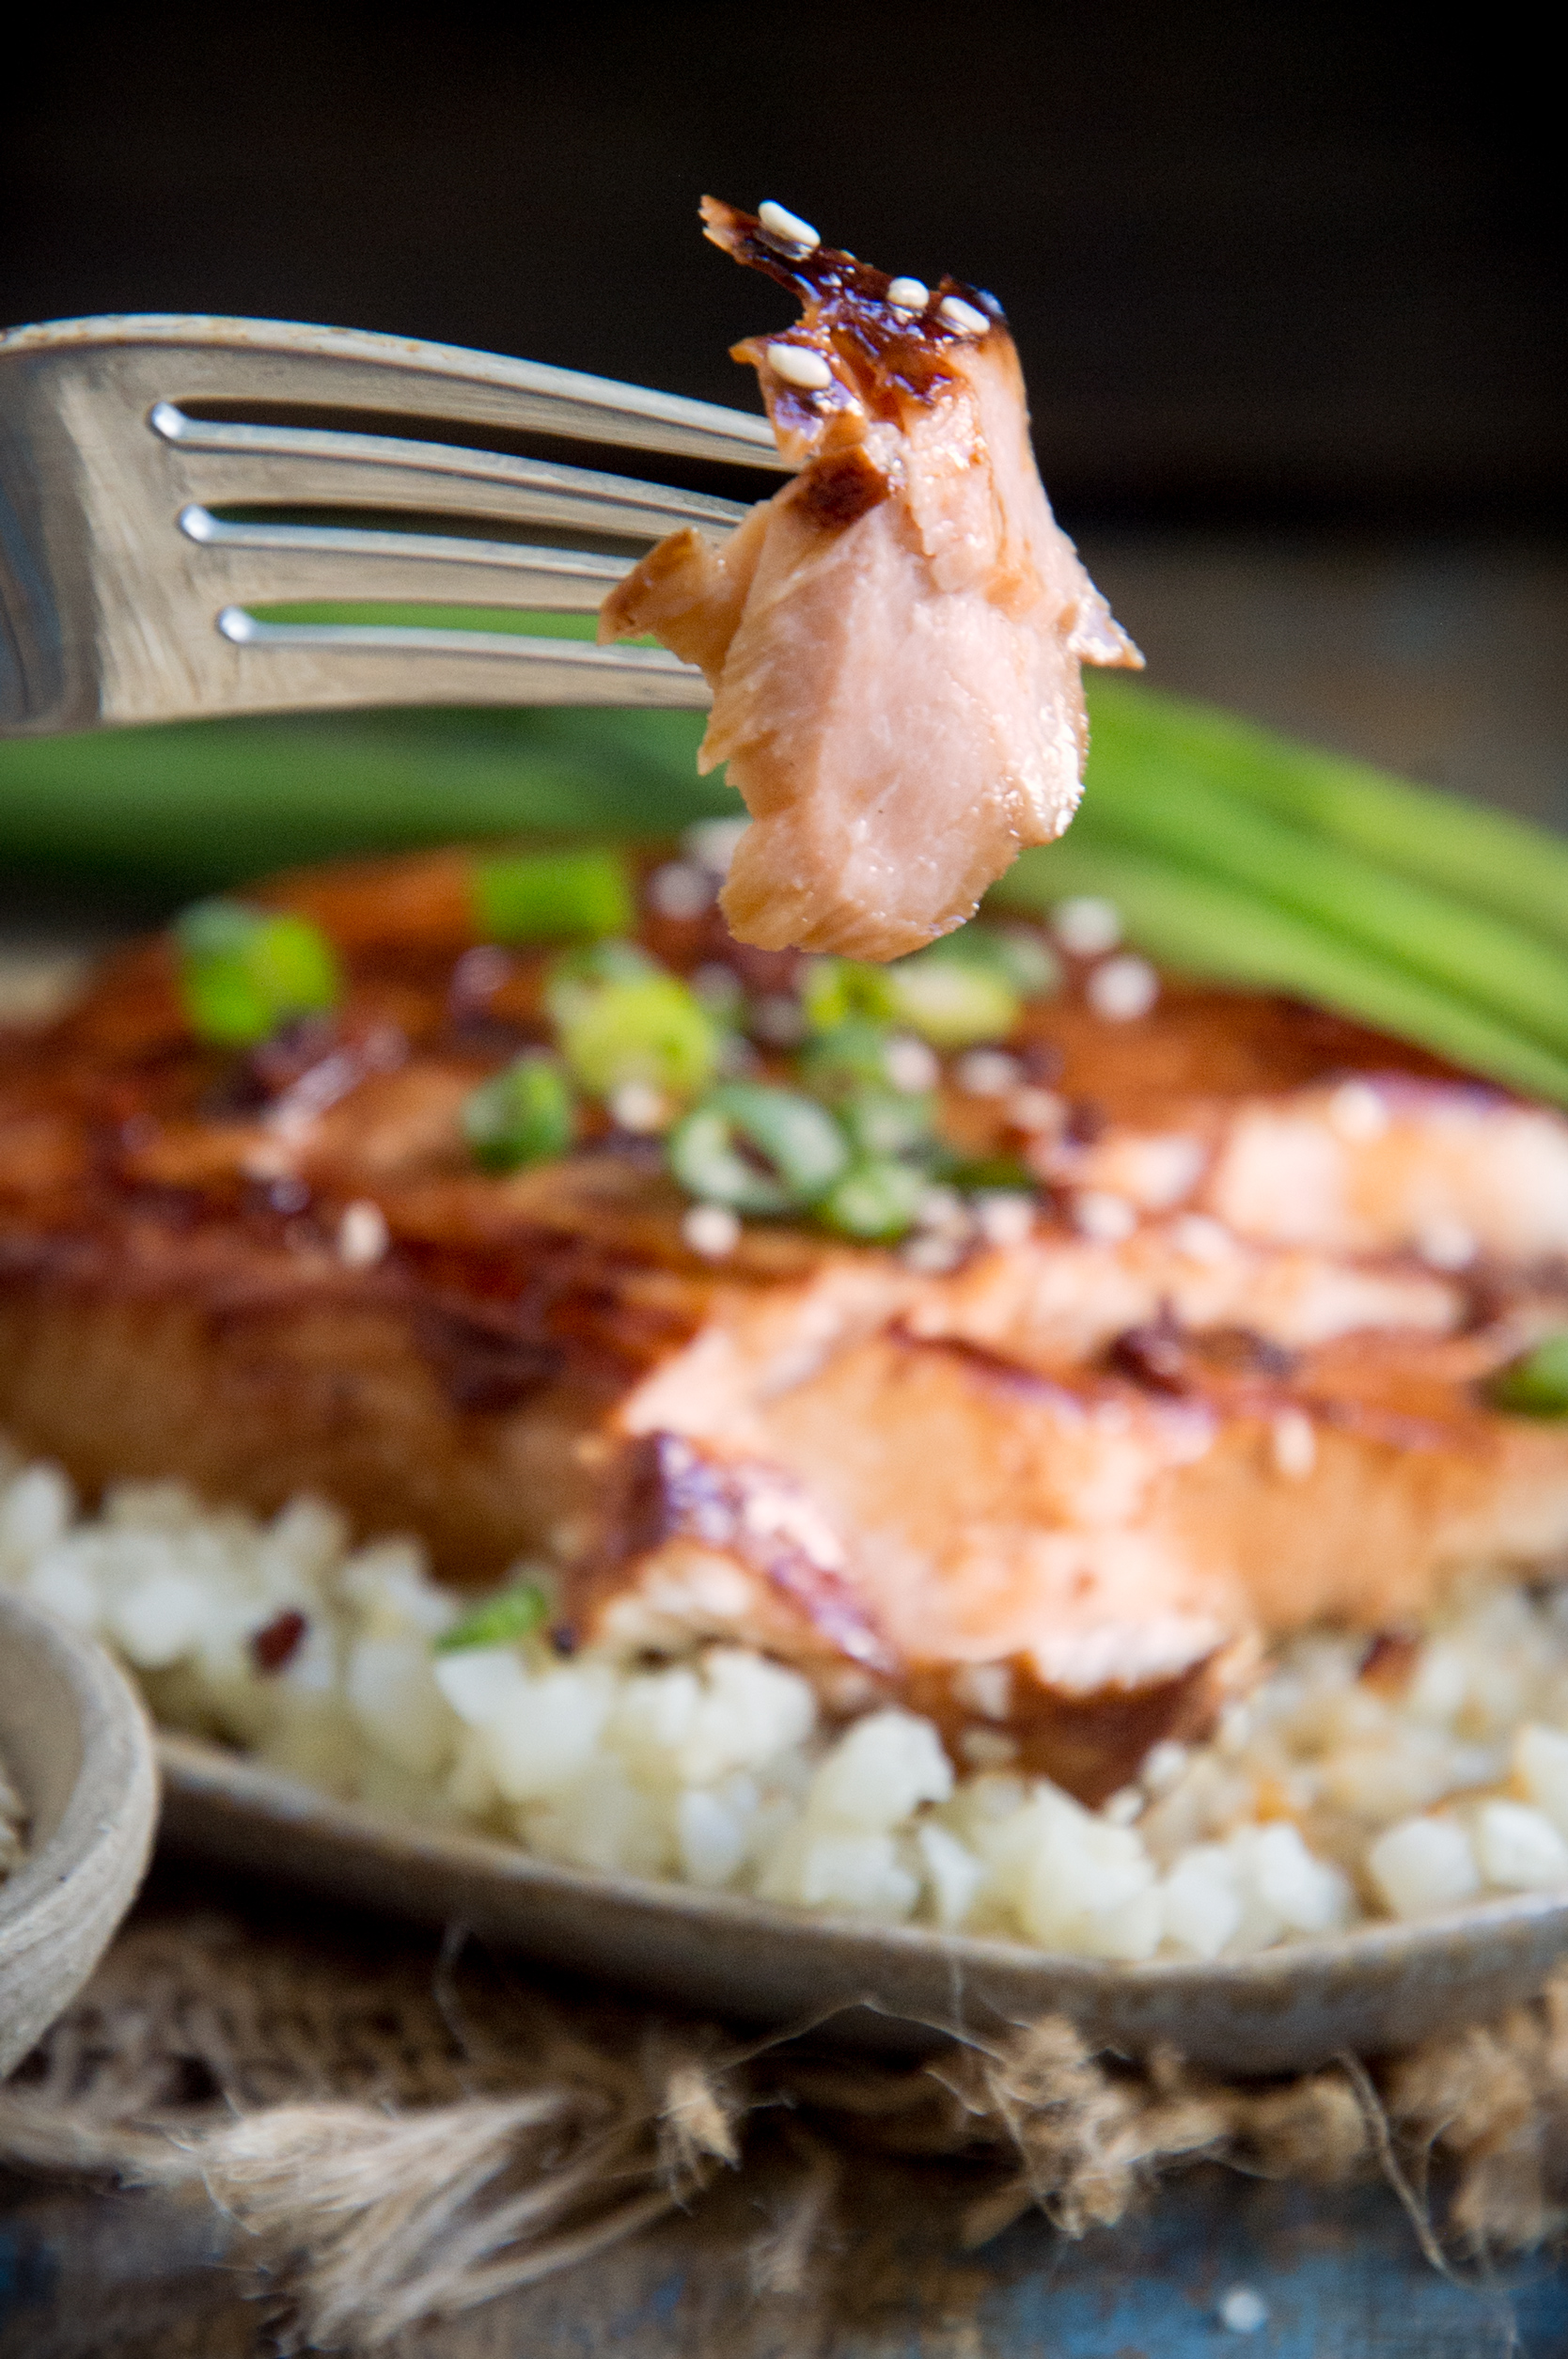 Photo of Low-Carb Teriyaki Salmon (Keto-Friendly) on a fork